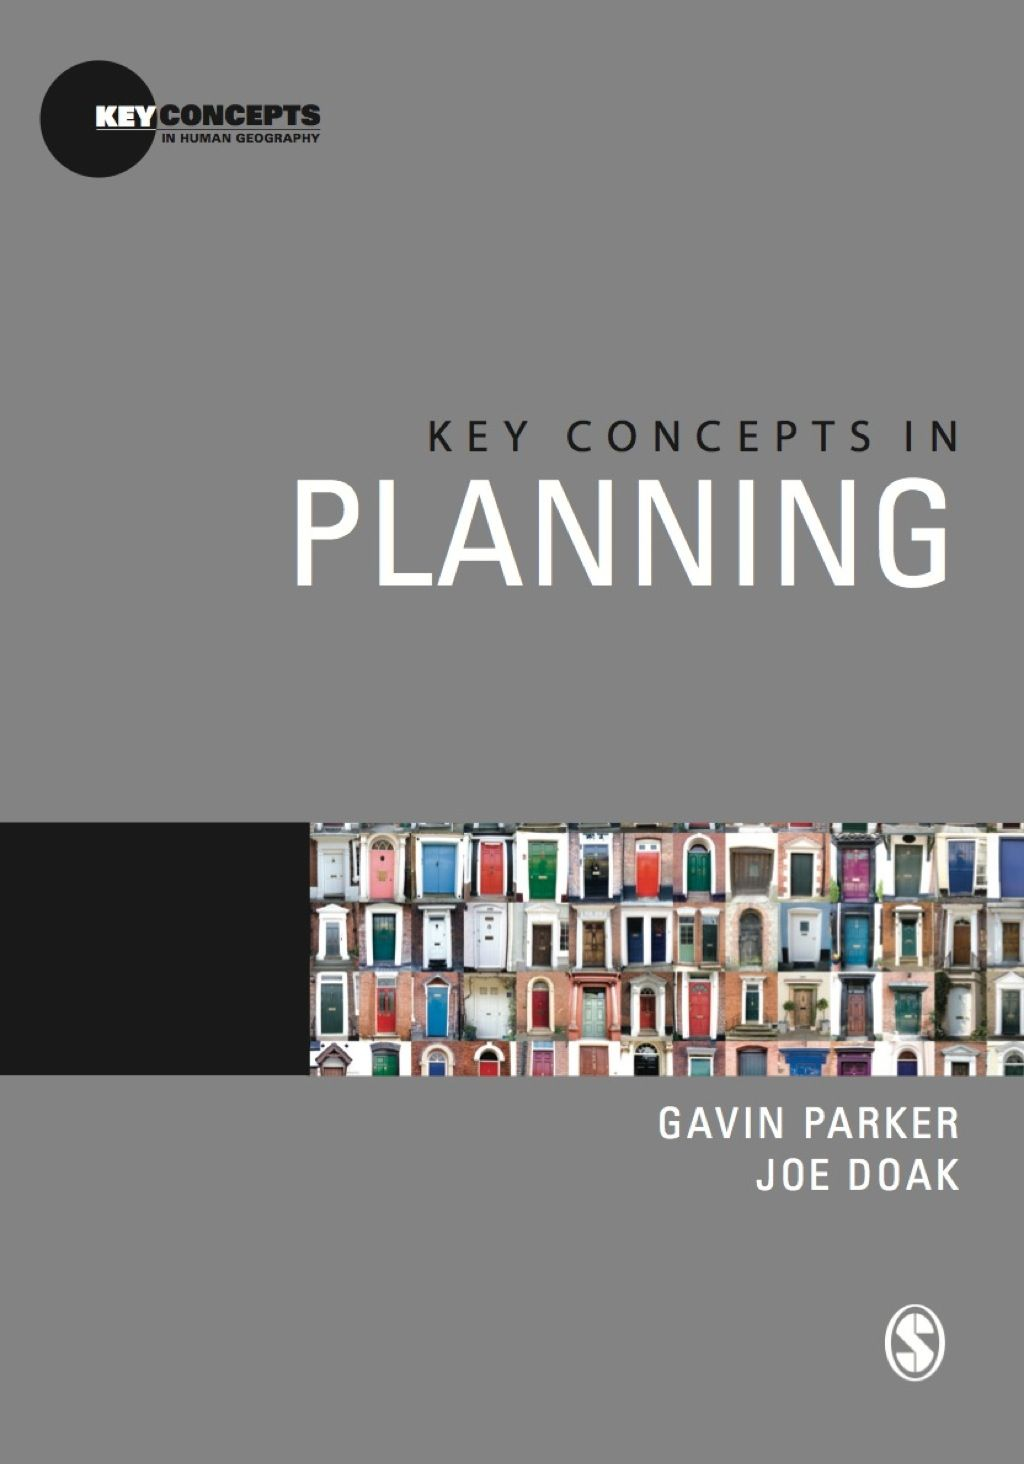 Key Concepts in Planning (eBook Rental) How to plan